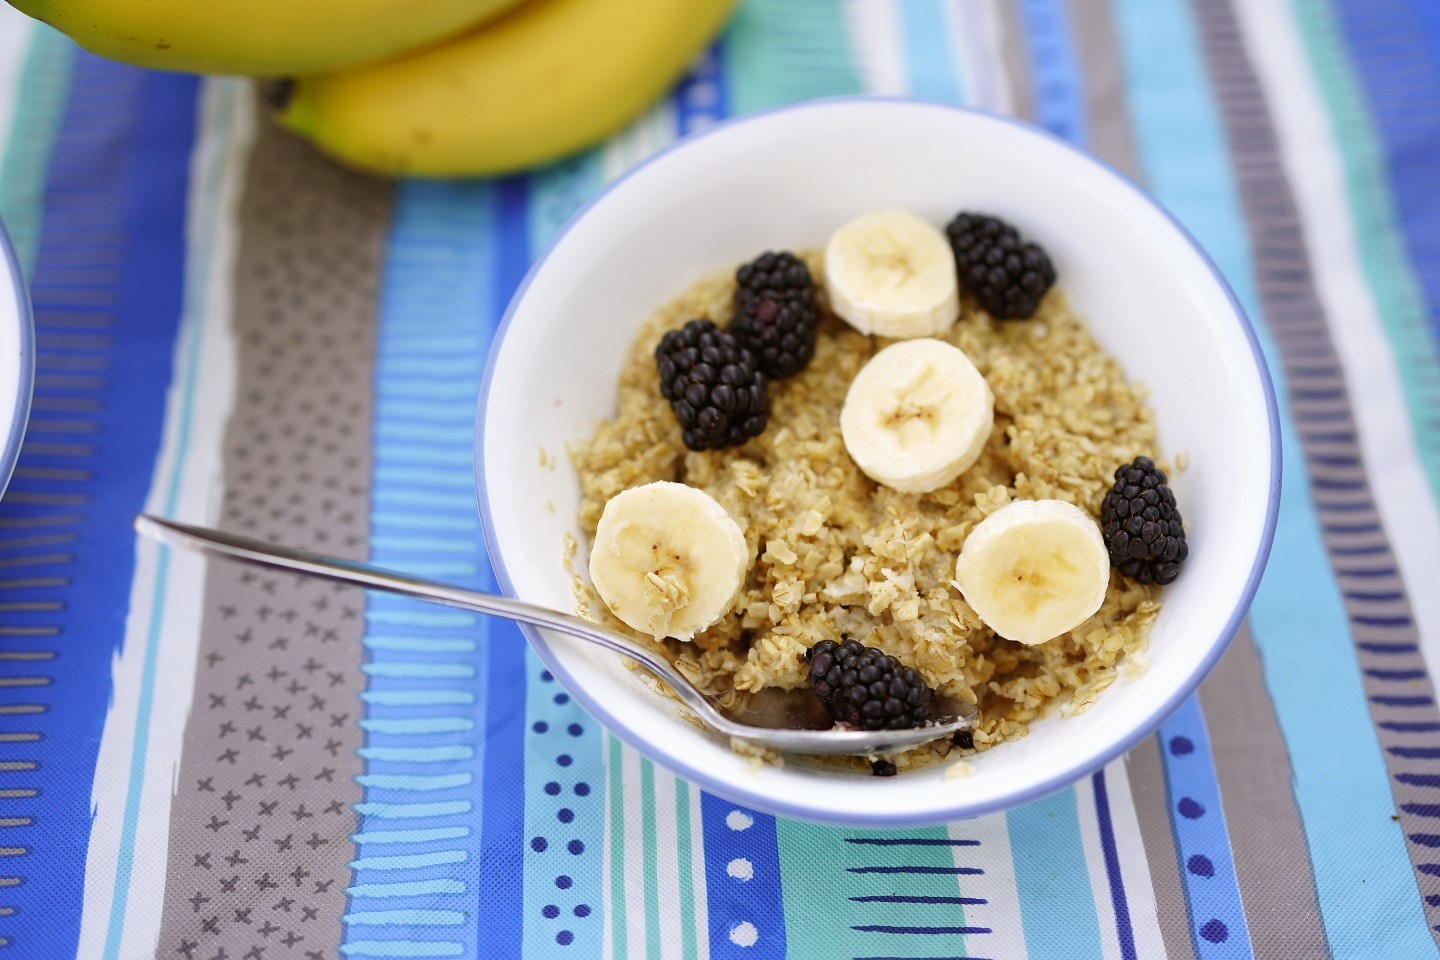 A bowl of oatmeal with bananas and blueberries.